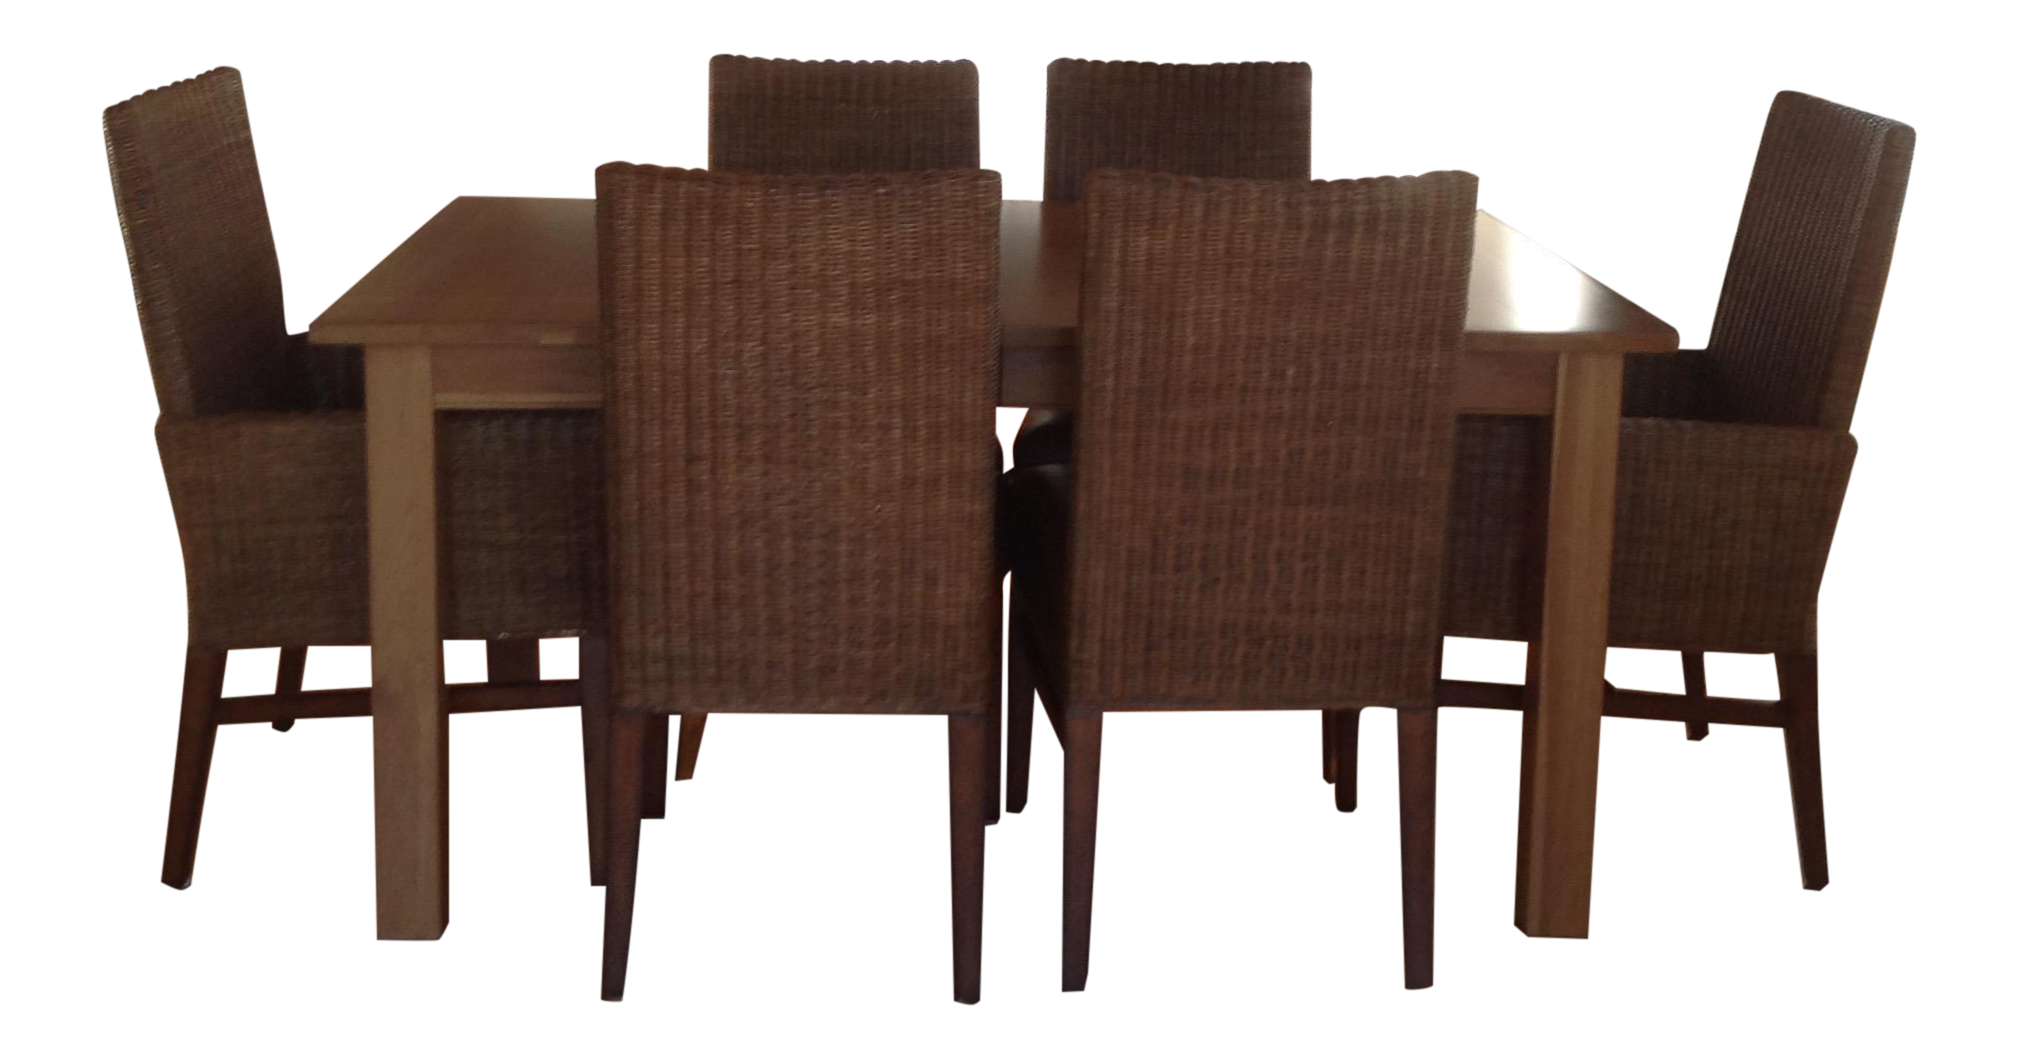 Ethan Allen Parsons Table With 6 Woven Wicker Chairs  : 66c8fcbc 5ec4 4589 95d3 19ef1b922272aspectfitampwidth640ampheight640 from www.chairish.com size 640 x 640 jpeg 24kB